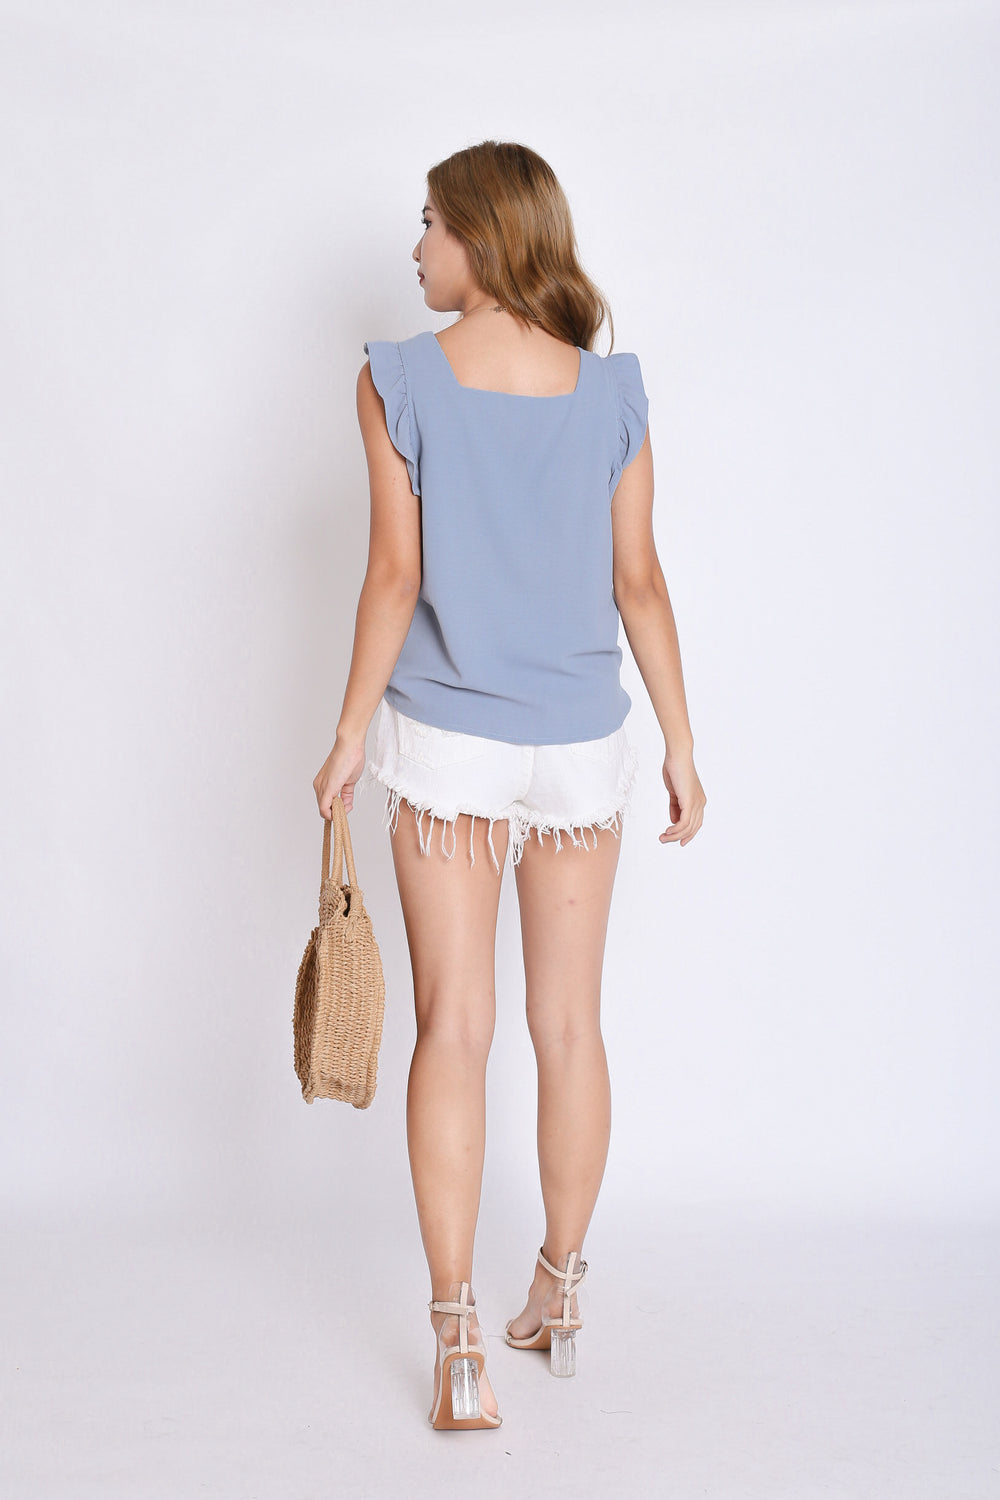 ALEXIS RUFFLES TOP IN DUSTY BLUE